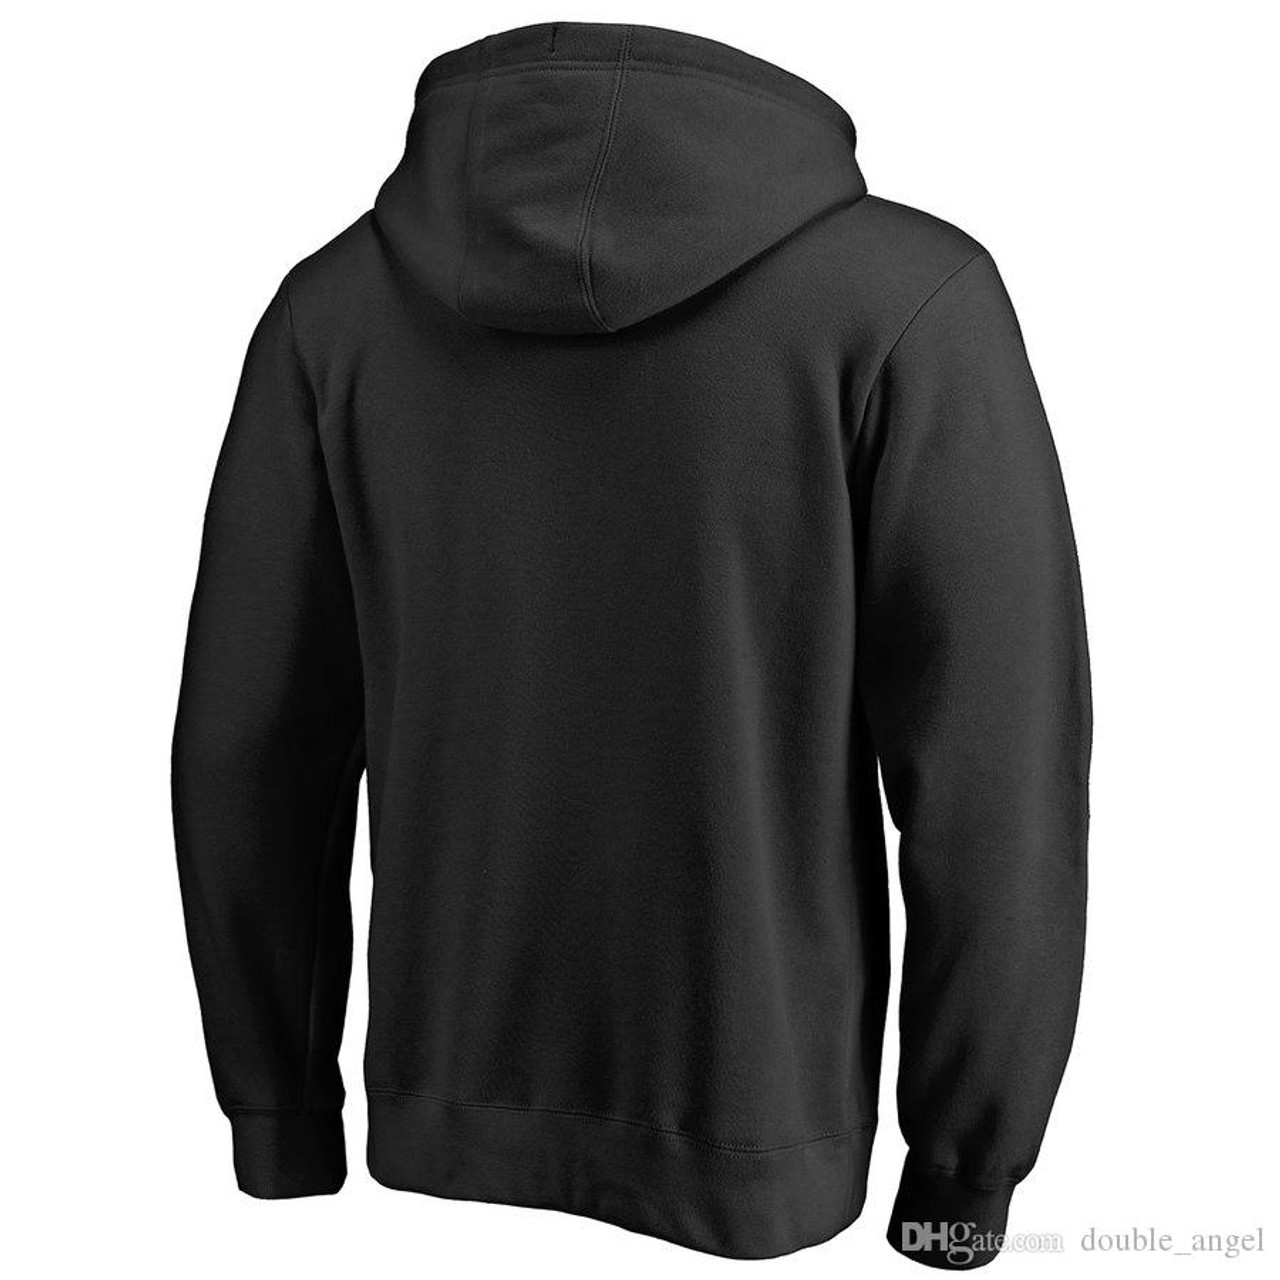 newest 1f19a a4be0 **(OFFICIALLY-LICENSED-NEW-ORLEANS-SAINTS-PULLOVER-HOODIES/OFFICIAL-SAINTS-TEAM-LOGOS  & FANACTICS-FOOTBALL-BRANDED/OFFICIAL-PRO-LINE-N.F.L.SAINTS-TEAM...